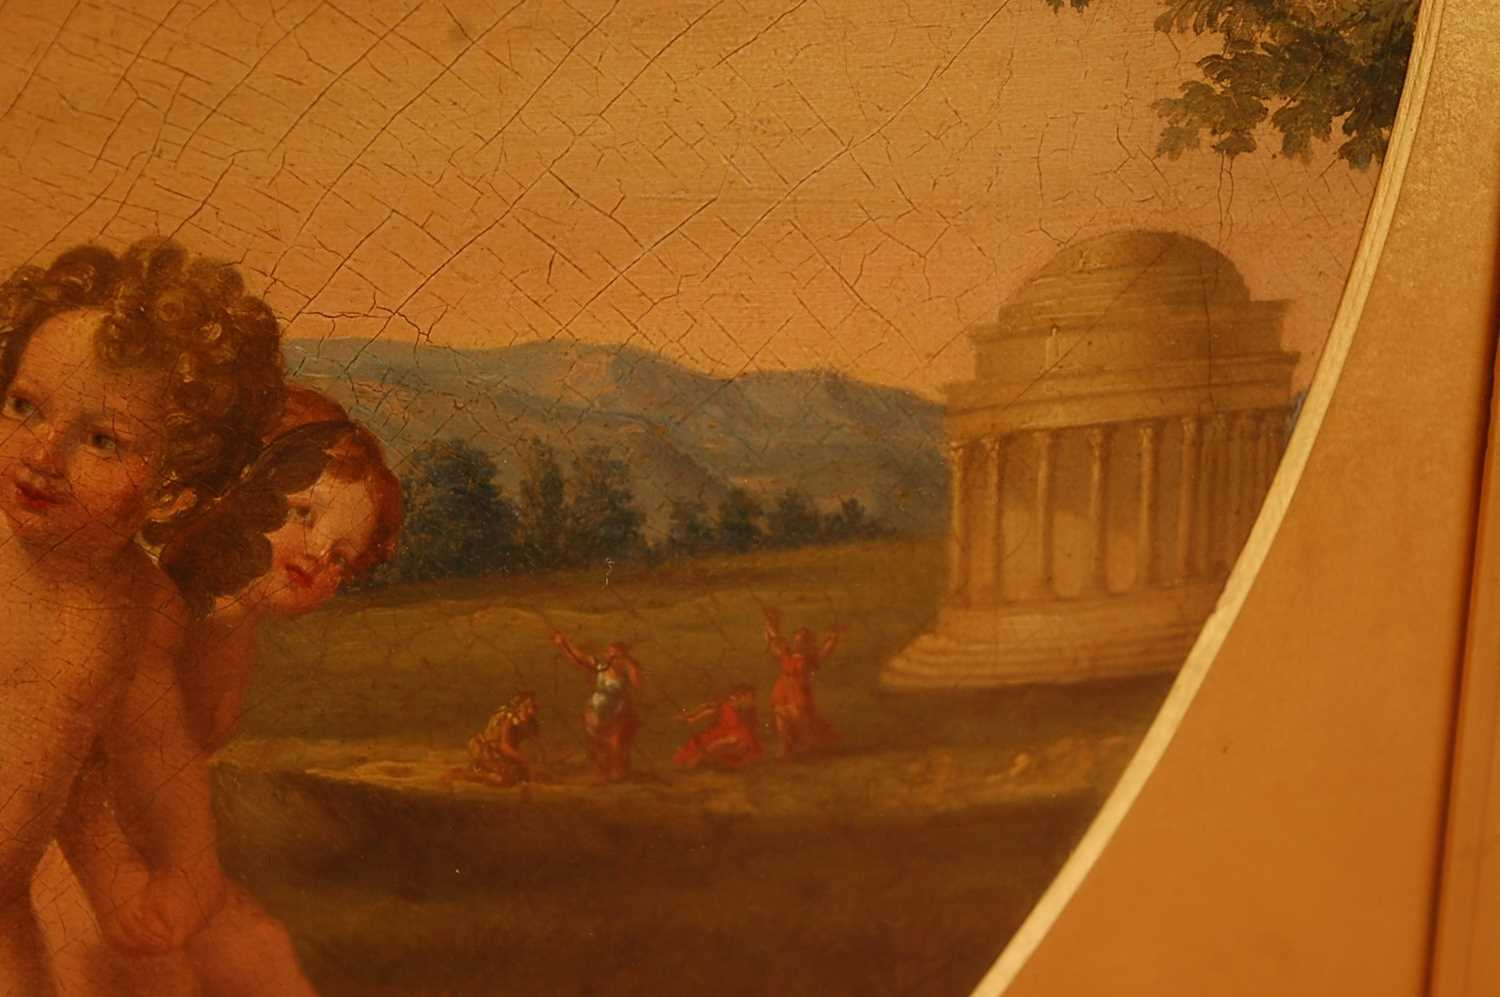 Guandallini Cententa (Italian 19th century) - Rape of Proserpine, oil on canvas, signed and dated - Image 5 of 9